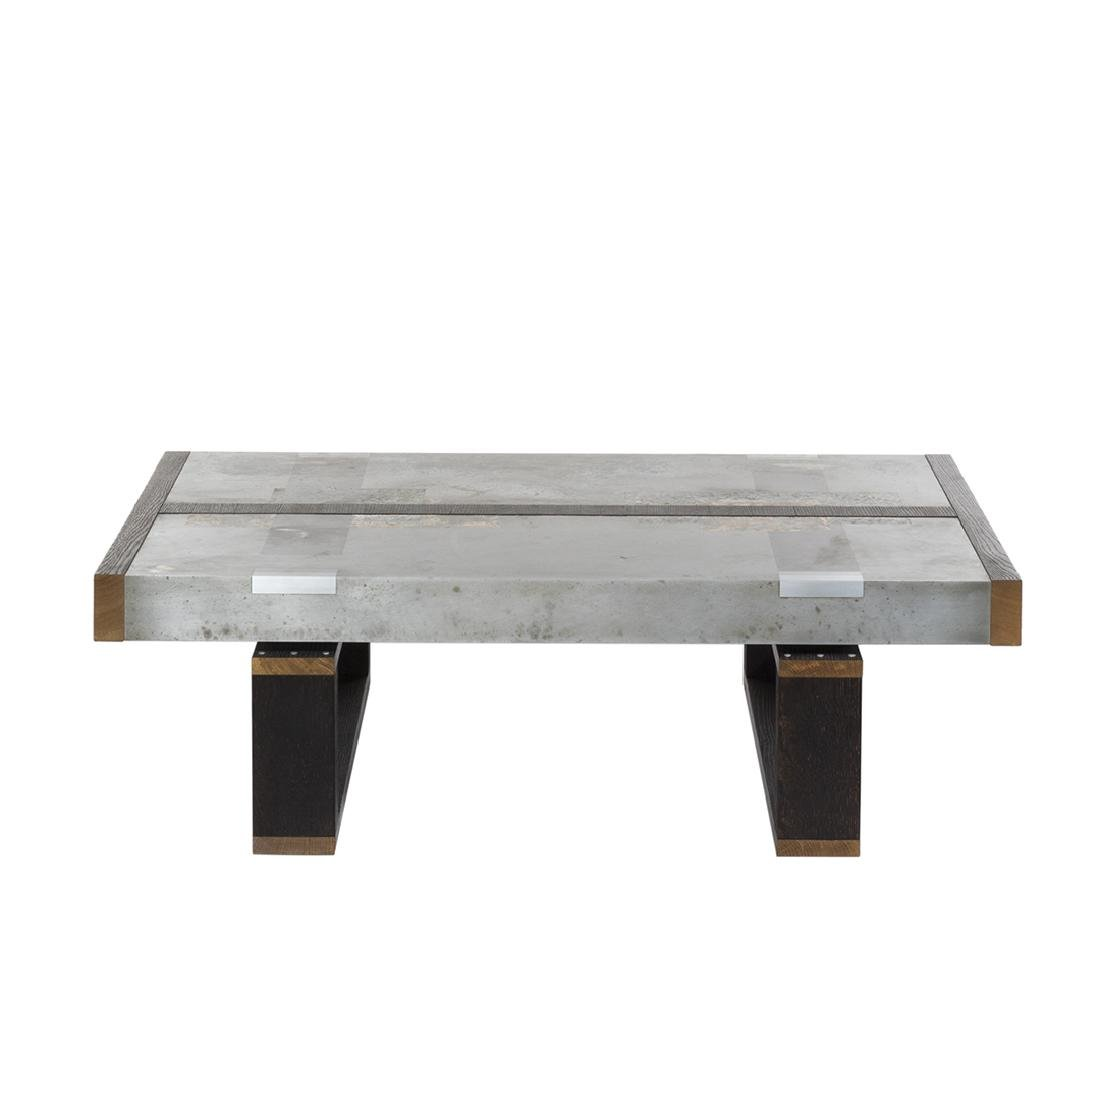 Studio Roeper Coffee Table